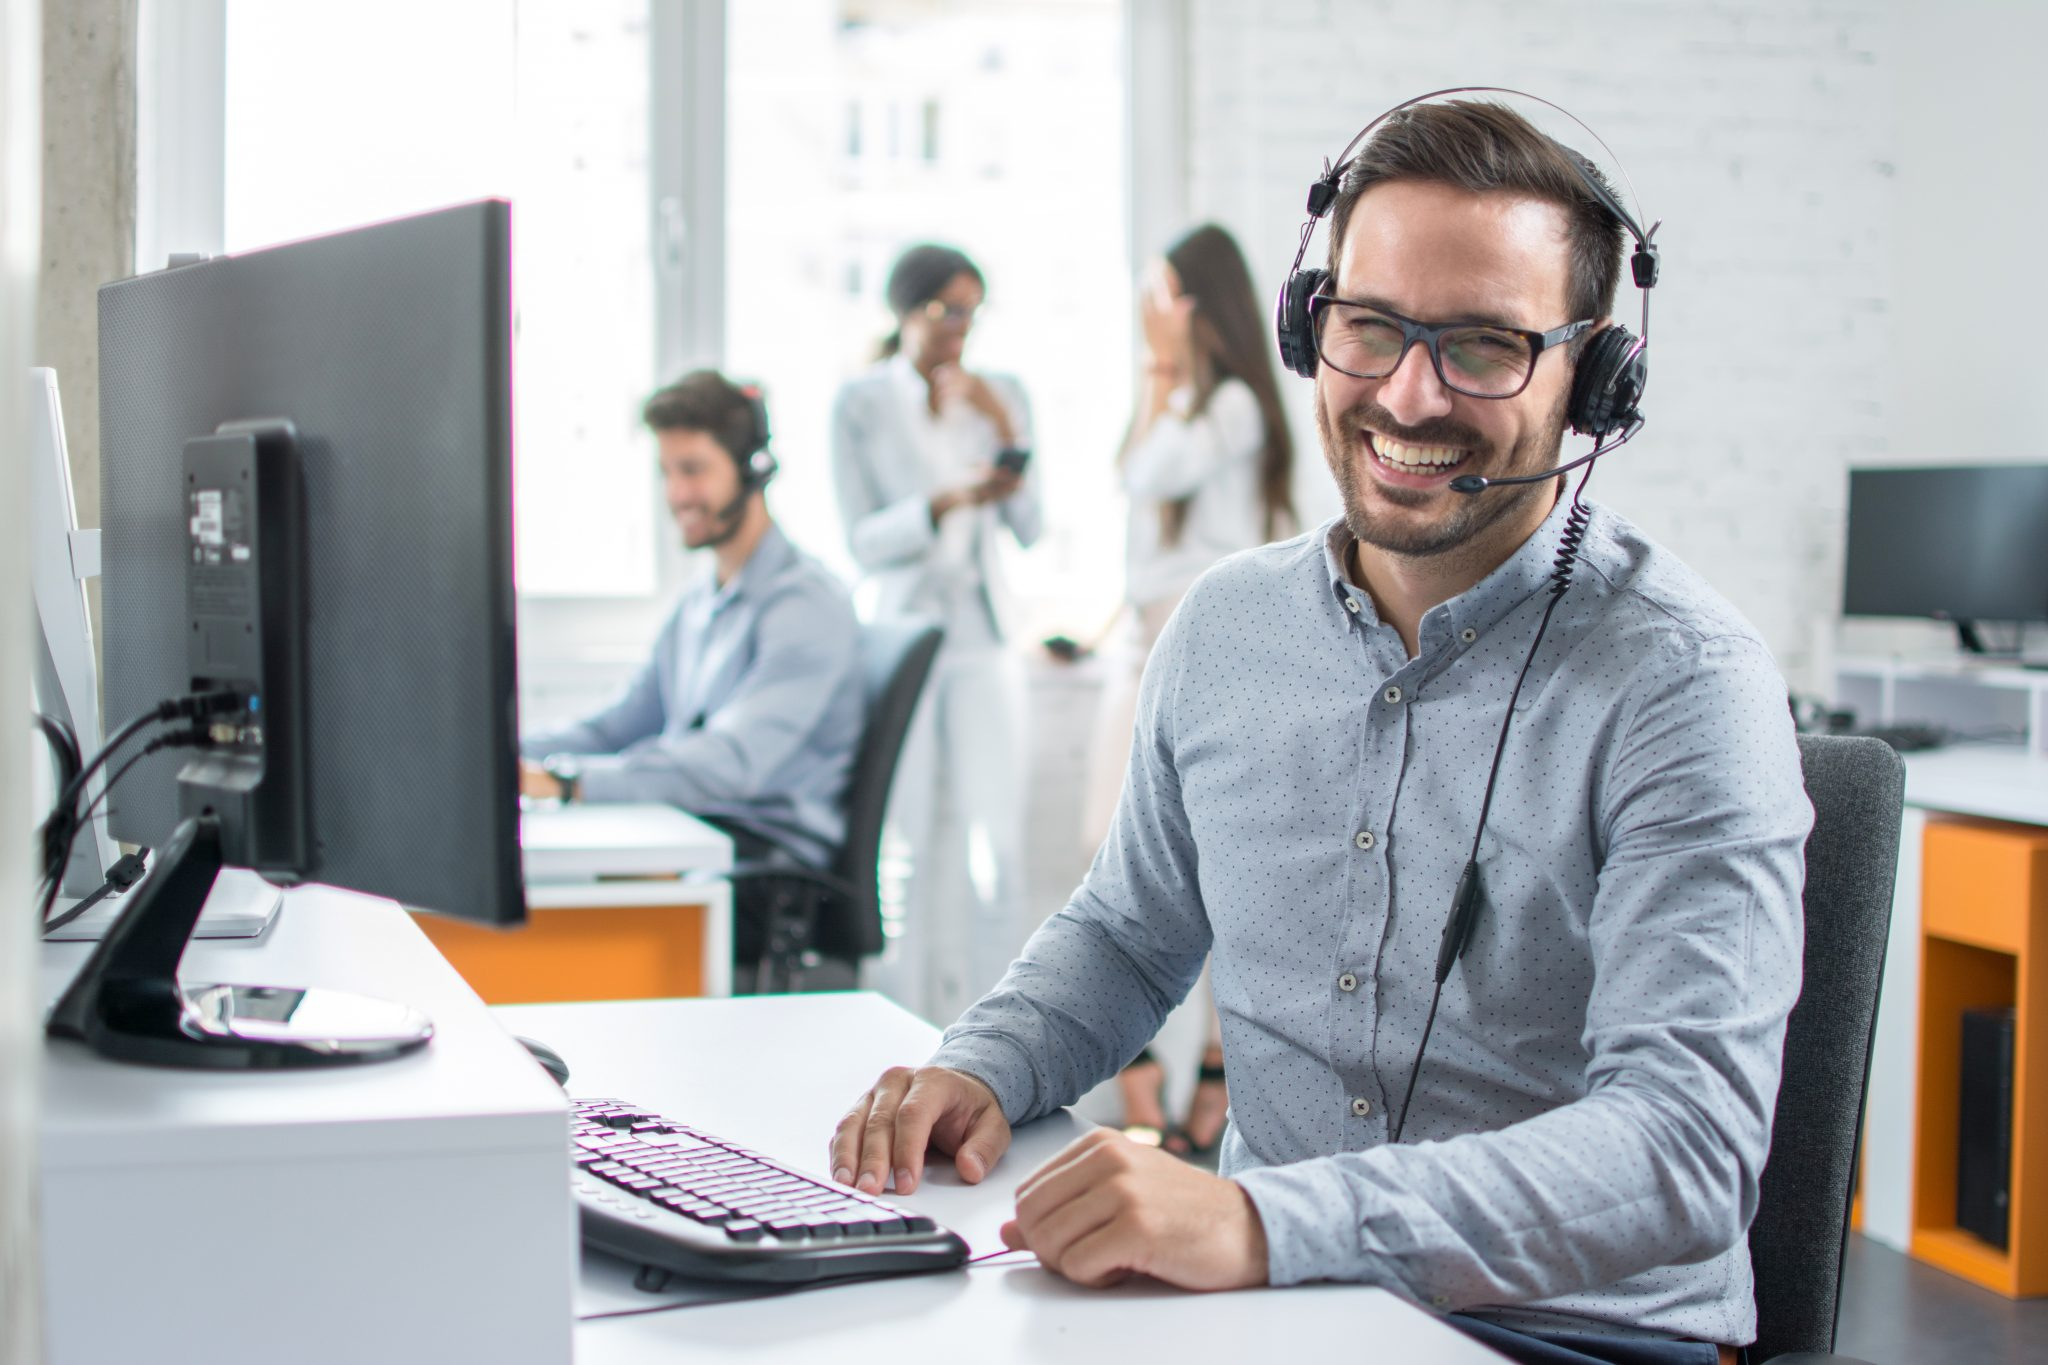 Transcriptionist smiling and wearing headphones on contact us page